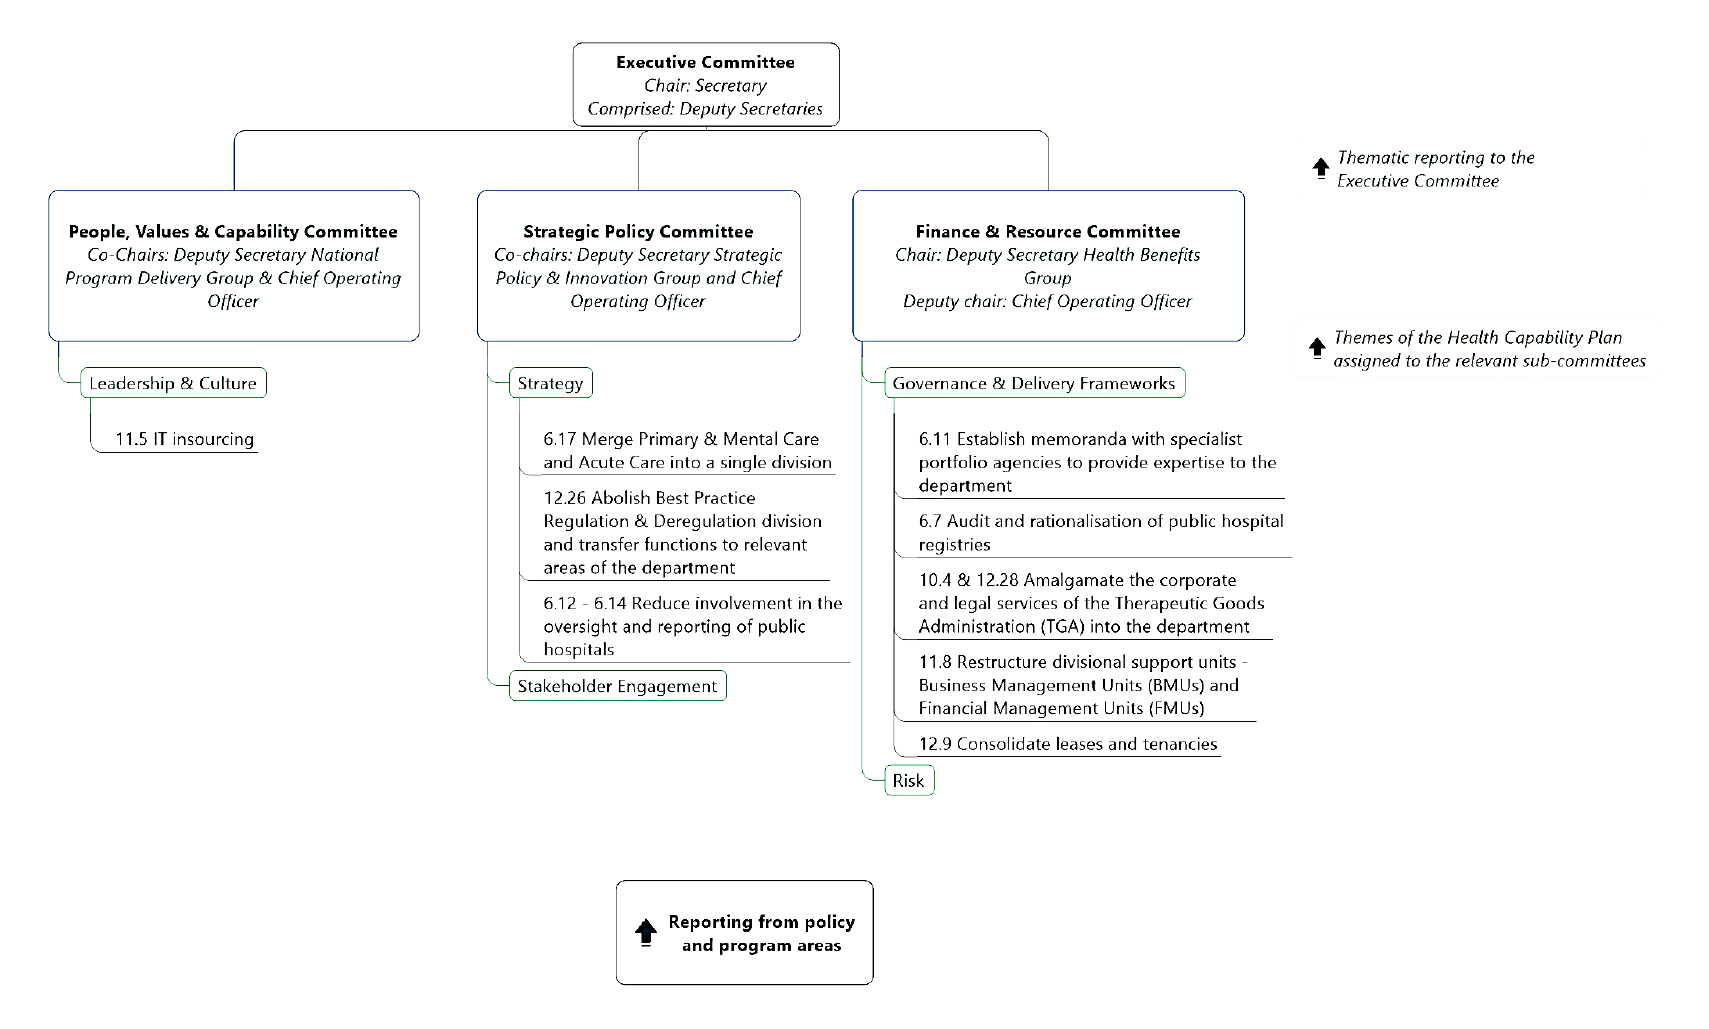 The figure shows the Department of Health's high-level committee system. The Executive Committee, chaired by the Secretary, was supported by three sub-committees which had responsibility for overseeing the department's implementation of recommendations ar